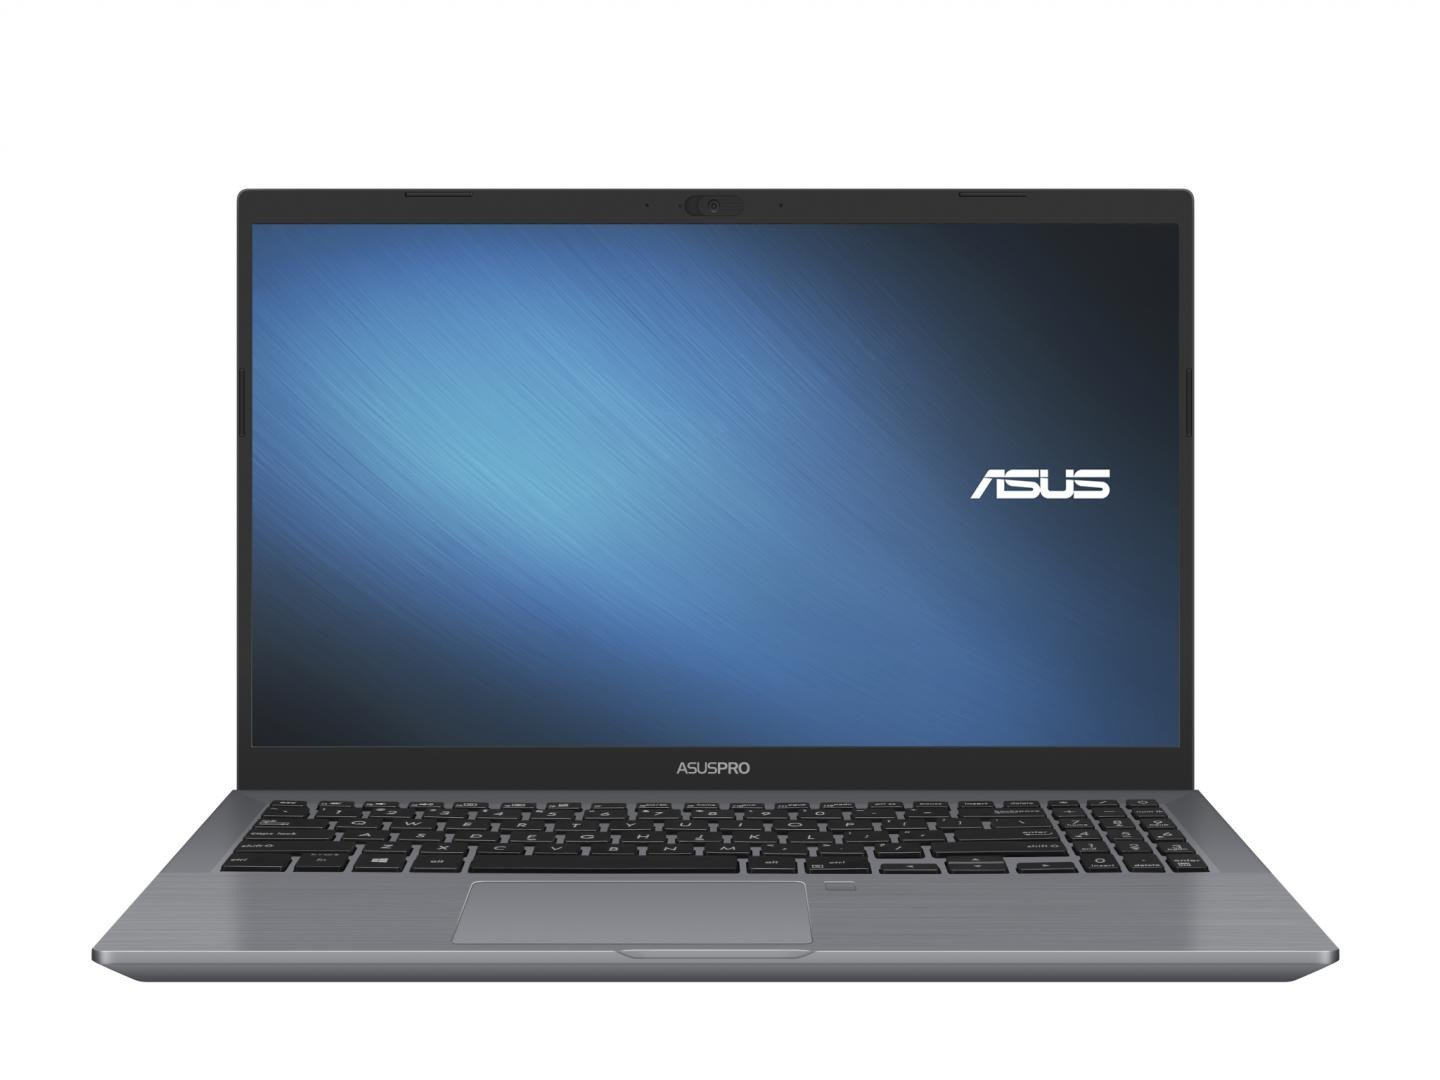 Laptop Business ASUS ExpertBook P3540FA-BR1336, 15.6-inch, HD (1366 x 768) 16:9, LCD, Anti-glare display, Intel® Core™ i5-8265U Processor 1.6 GHz (6M Cache, up to 3.9 GHz, 4 cores), Intel® UHD Graphics 620, 8GB DDR4 on board, 512GB M.2 NVMe™ PCIe® 3.0 SSD, Wi-Fi 5(802.11ac) +Bluetooth 4.2 (Dual - imaginea 3